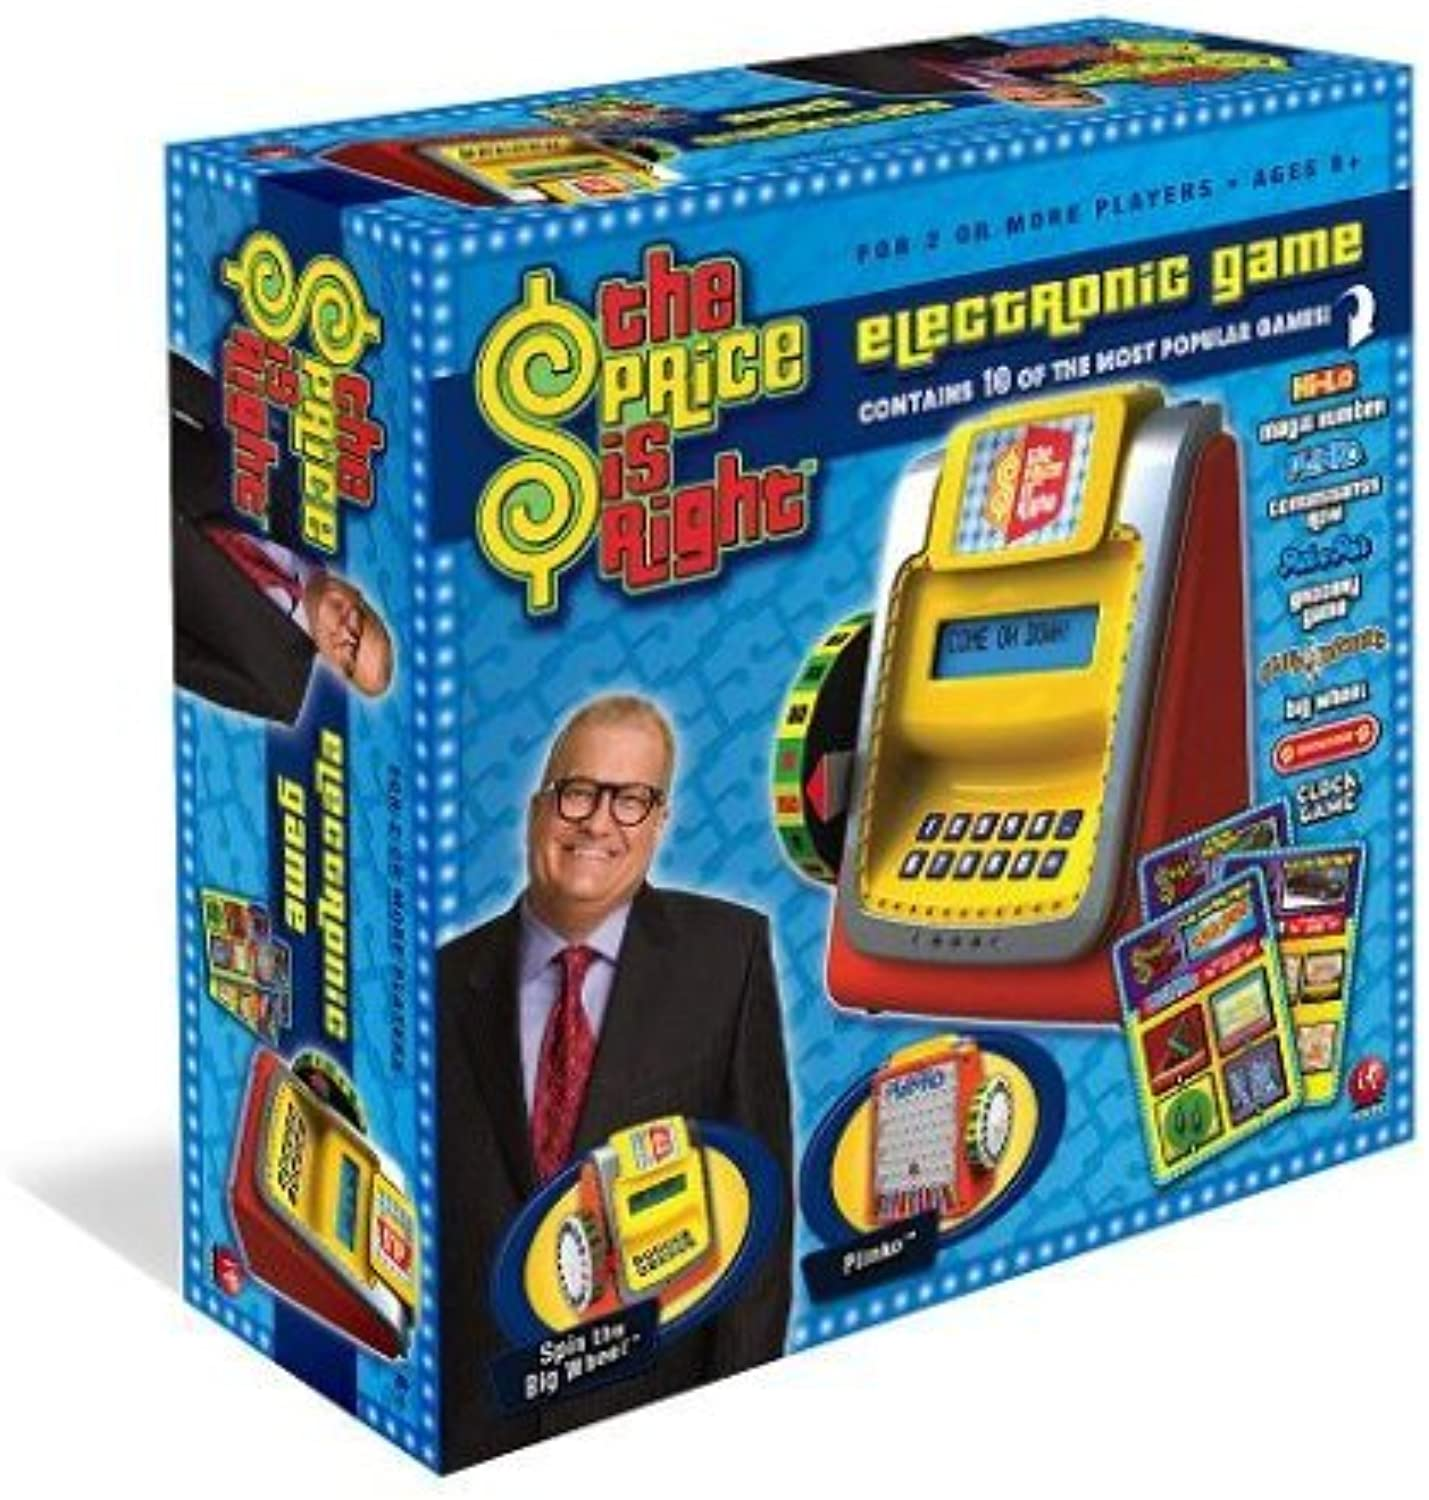 IToys Inc. Price is Right Electronic Tabletop Game